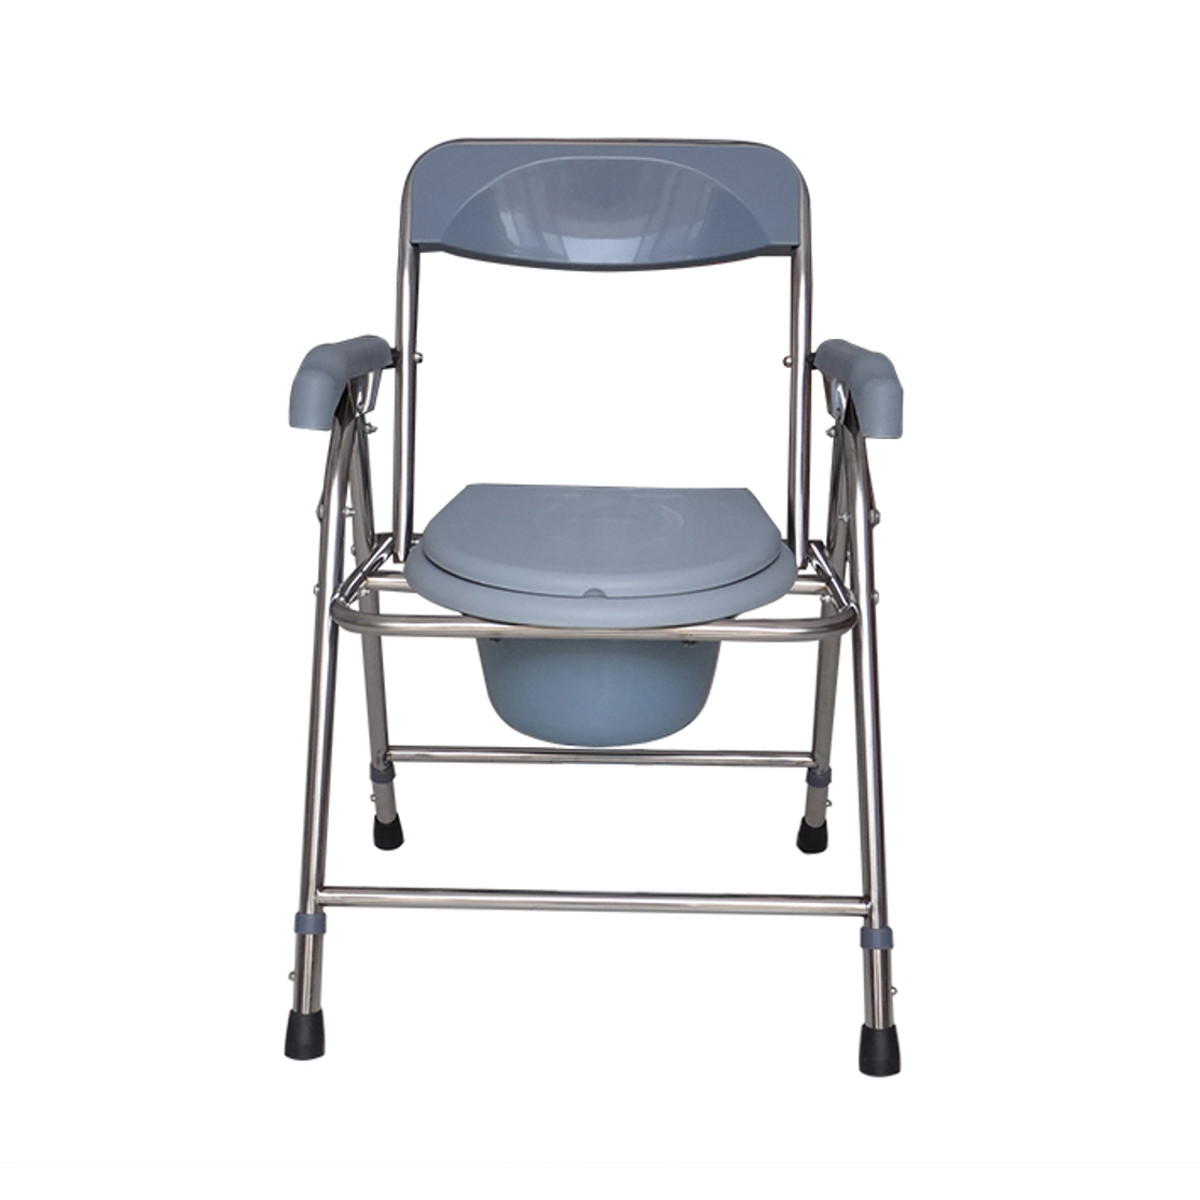 Bedside Commode Chair Folding Bedside Commode Chair Heavy Duty Commode Toilet Chair Toilet Safety Medical Commode Old Man Pregnant Woman Toilet Chair